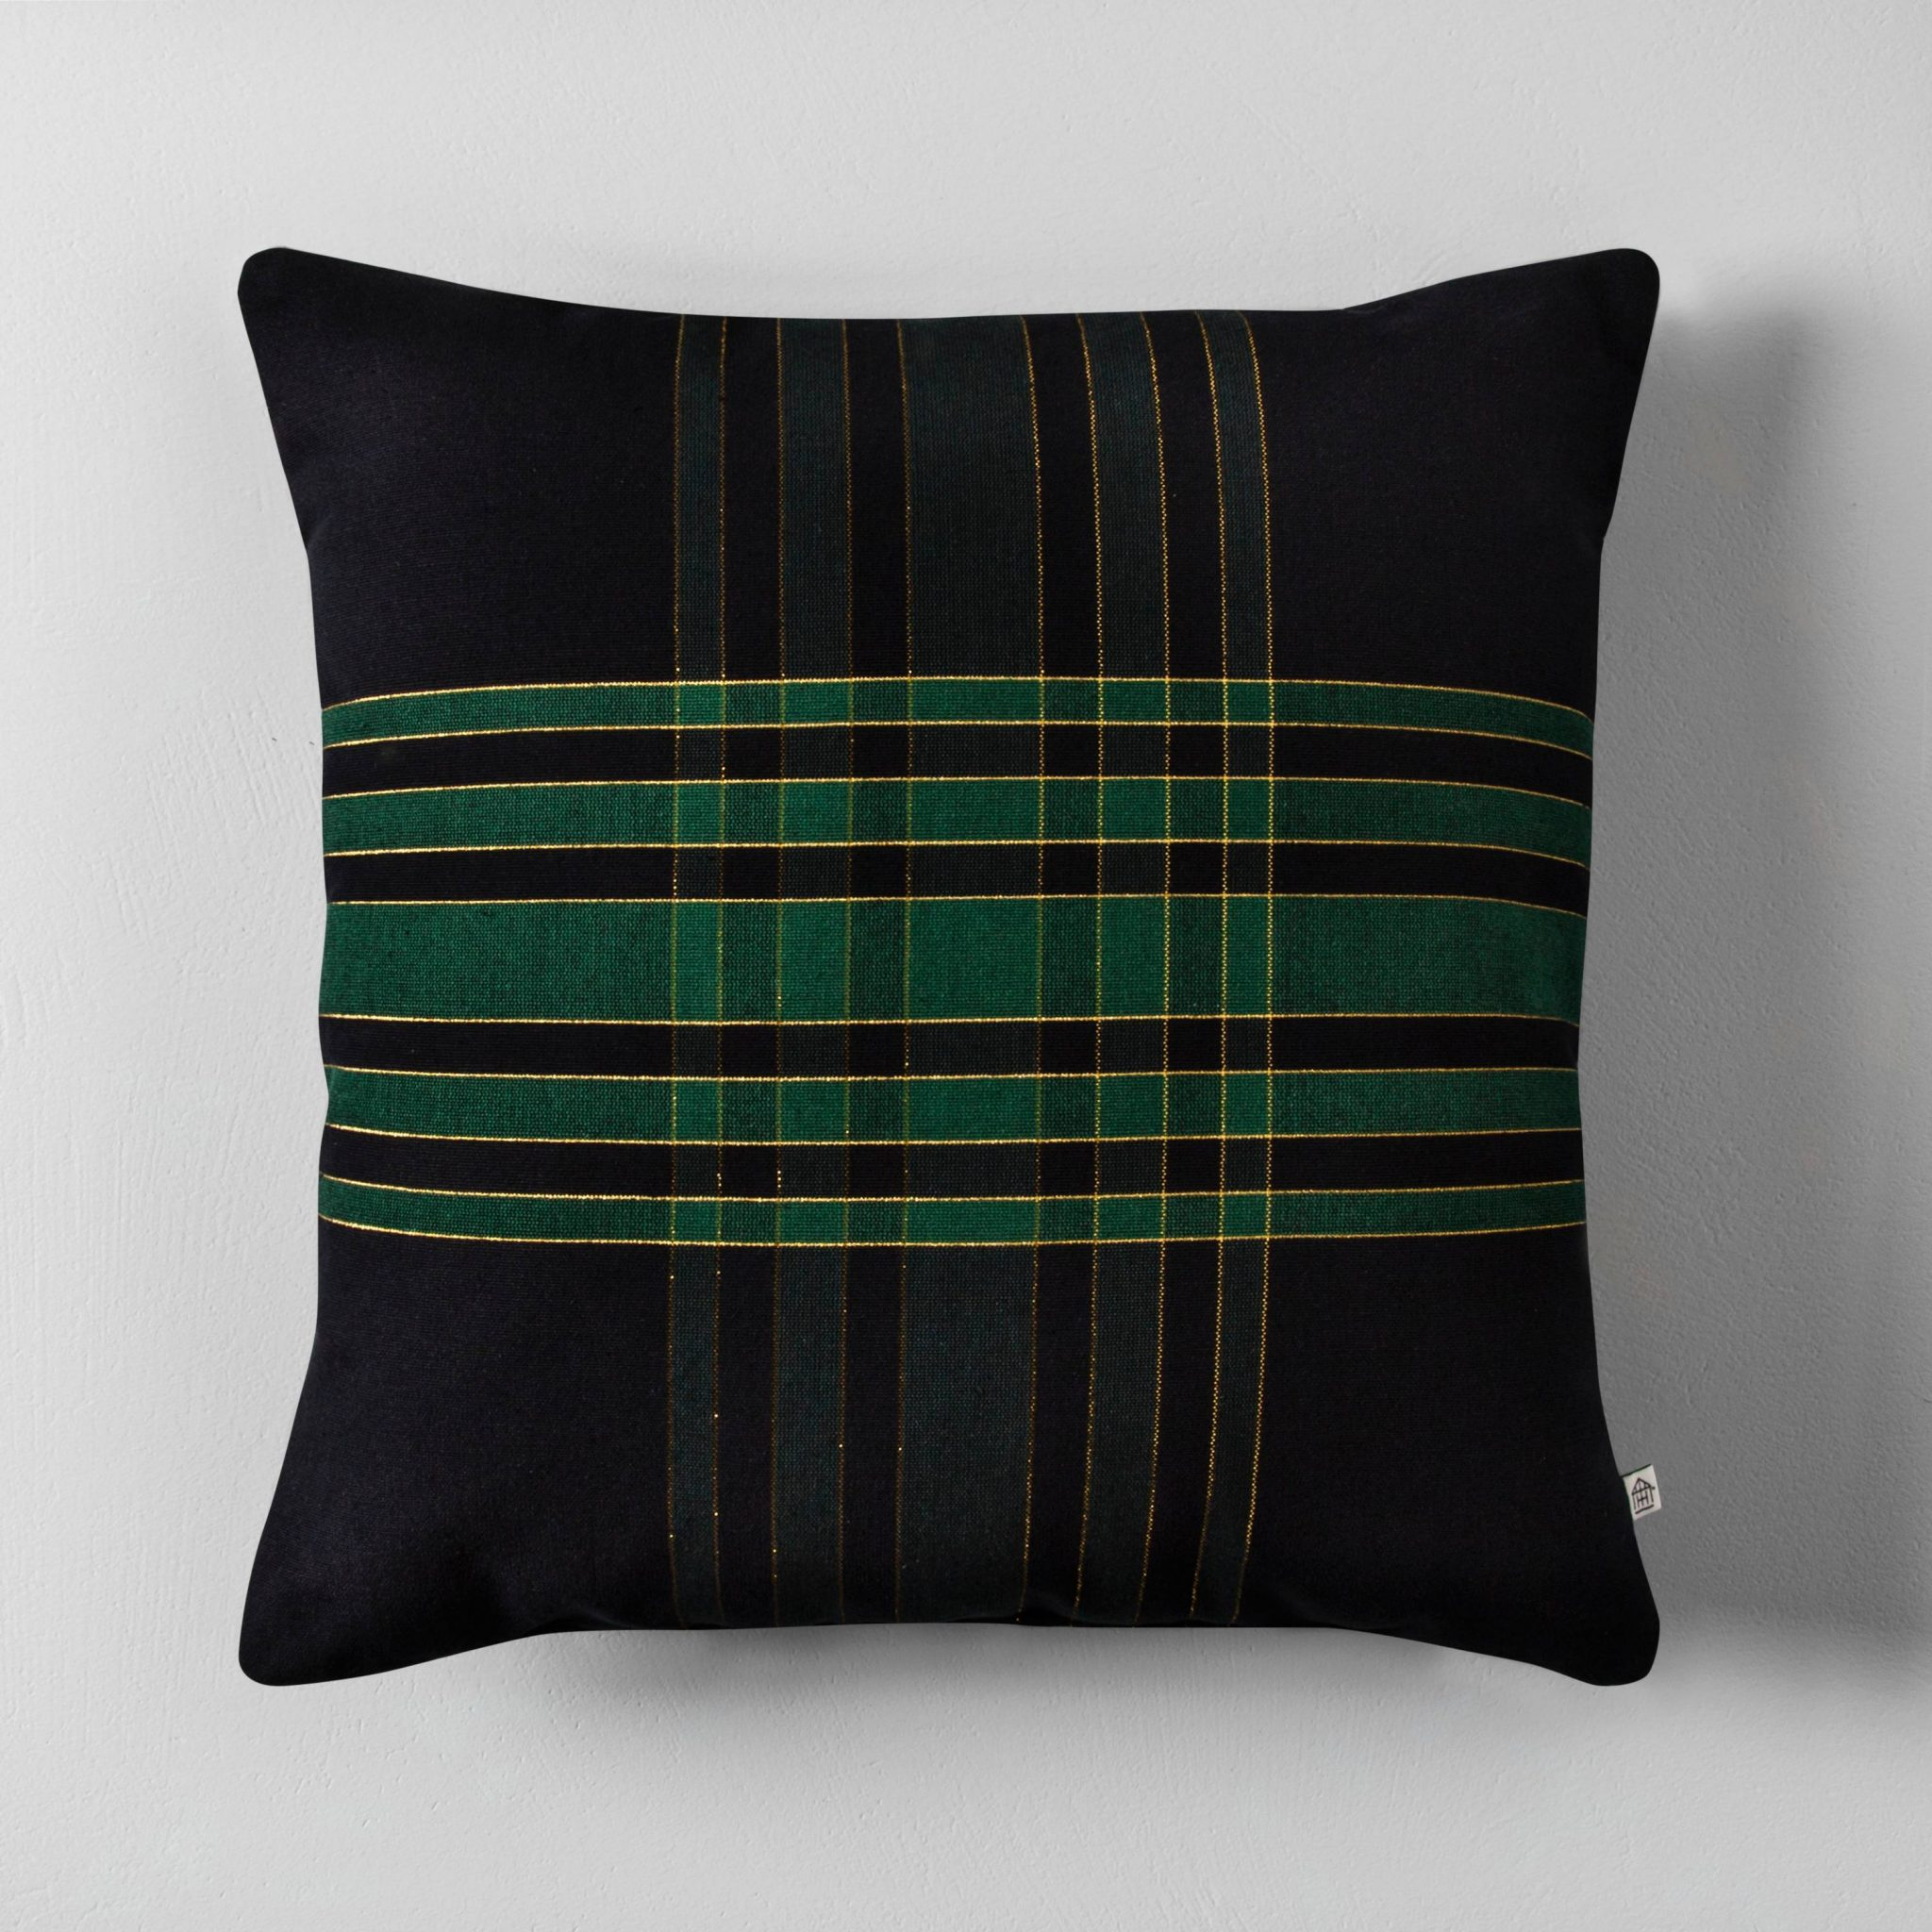 Hearth & Hand Plaid Throw Pillow